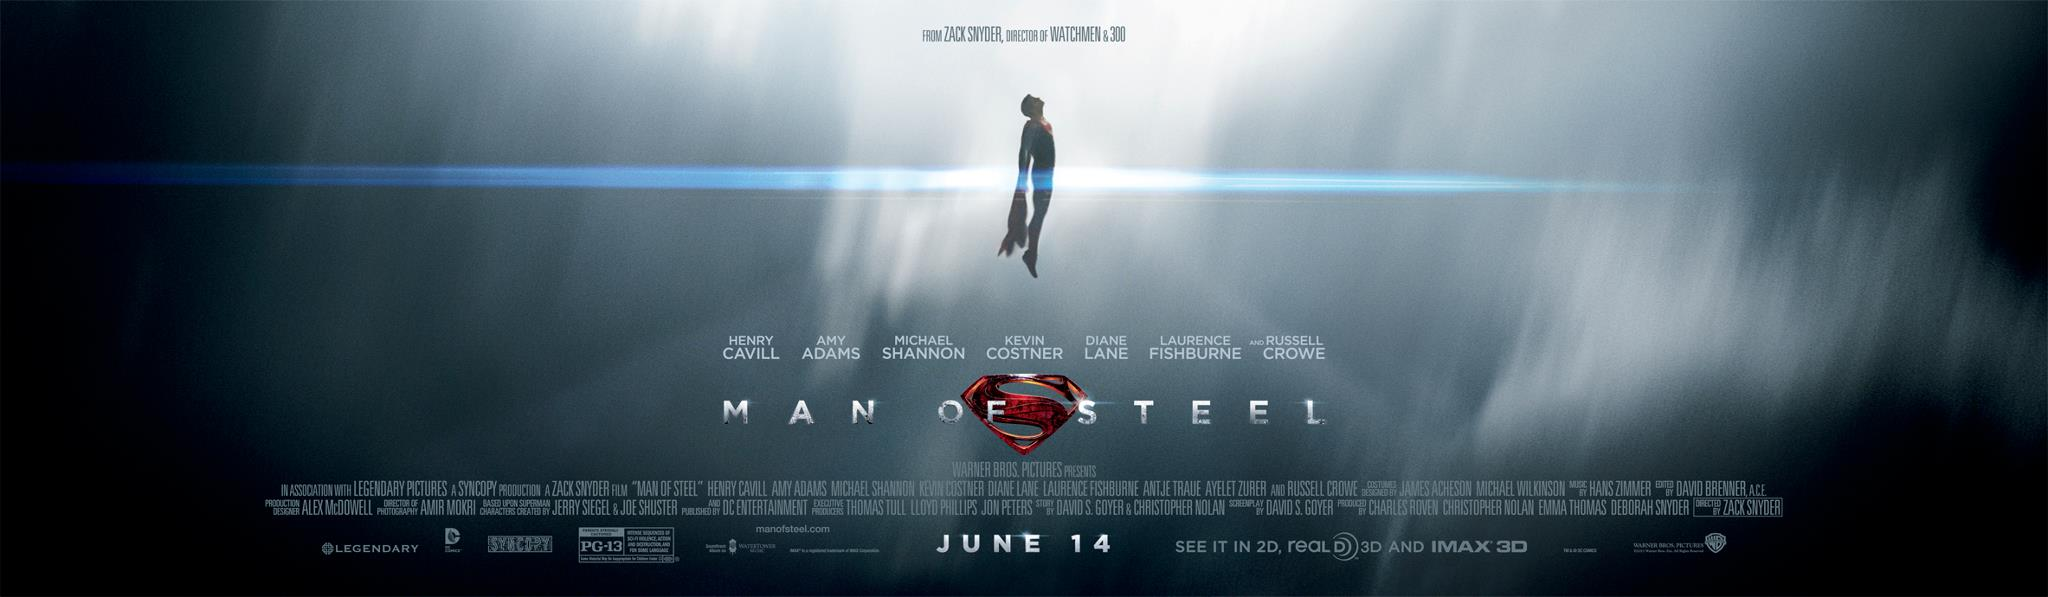 Nuovo banner per Man of Steel